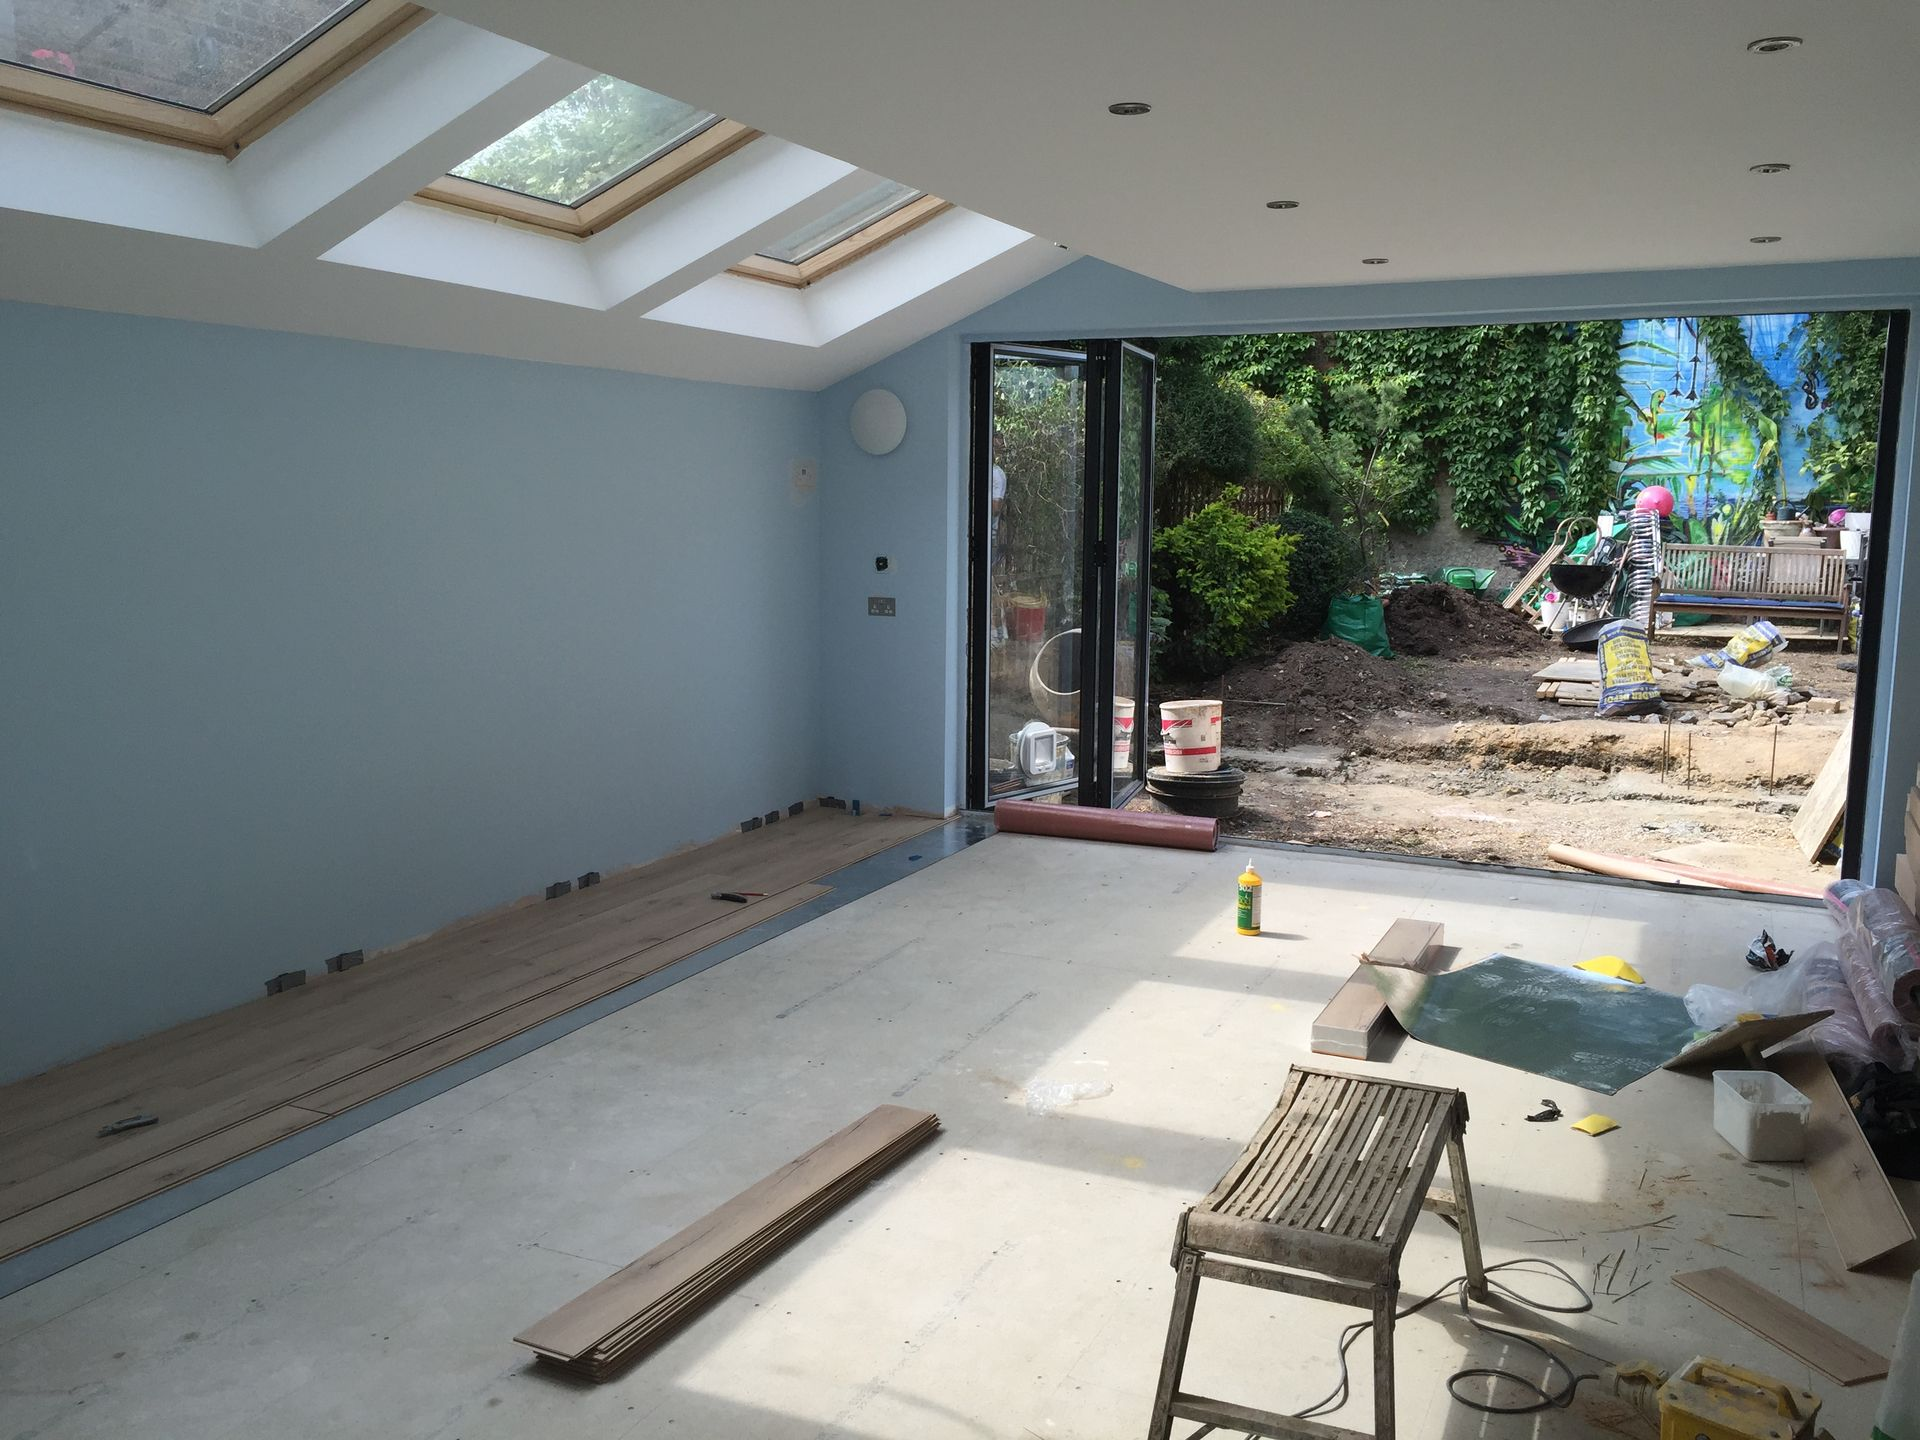 Making excellent progress on our build in Highgate, N19